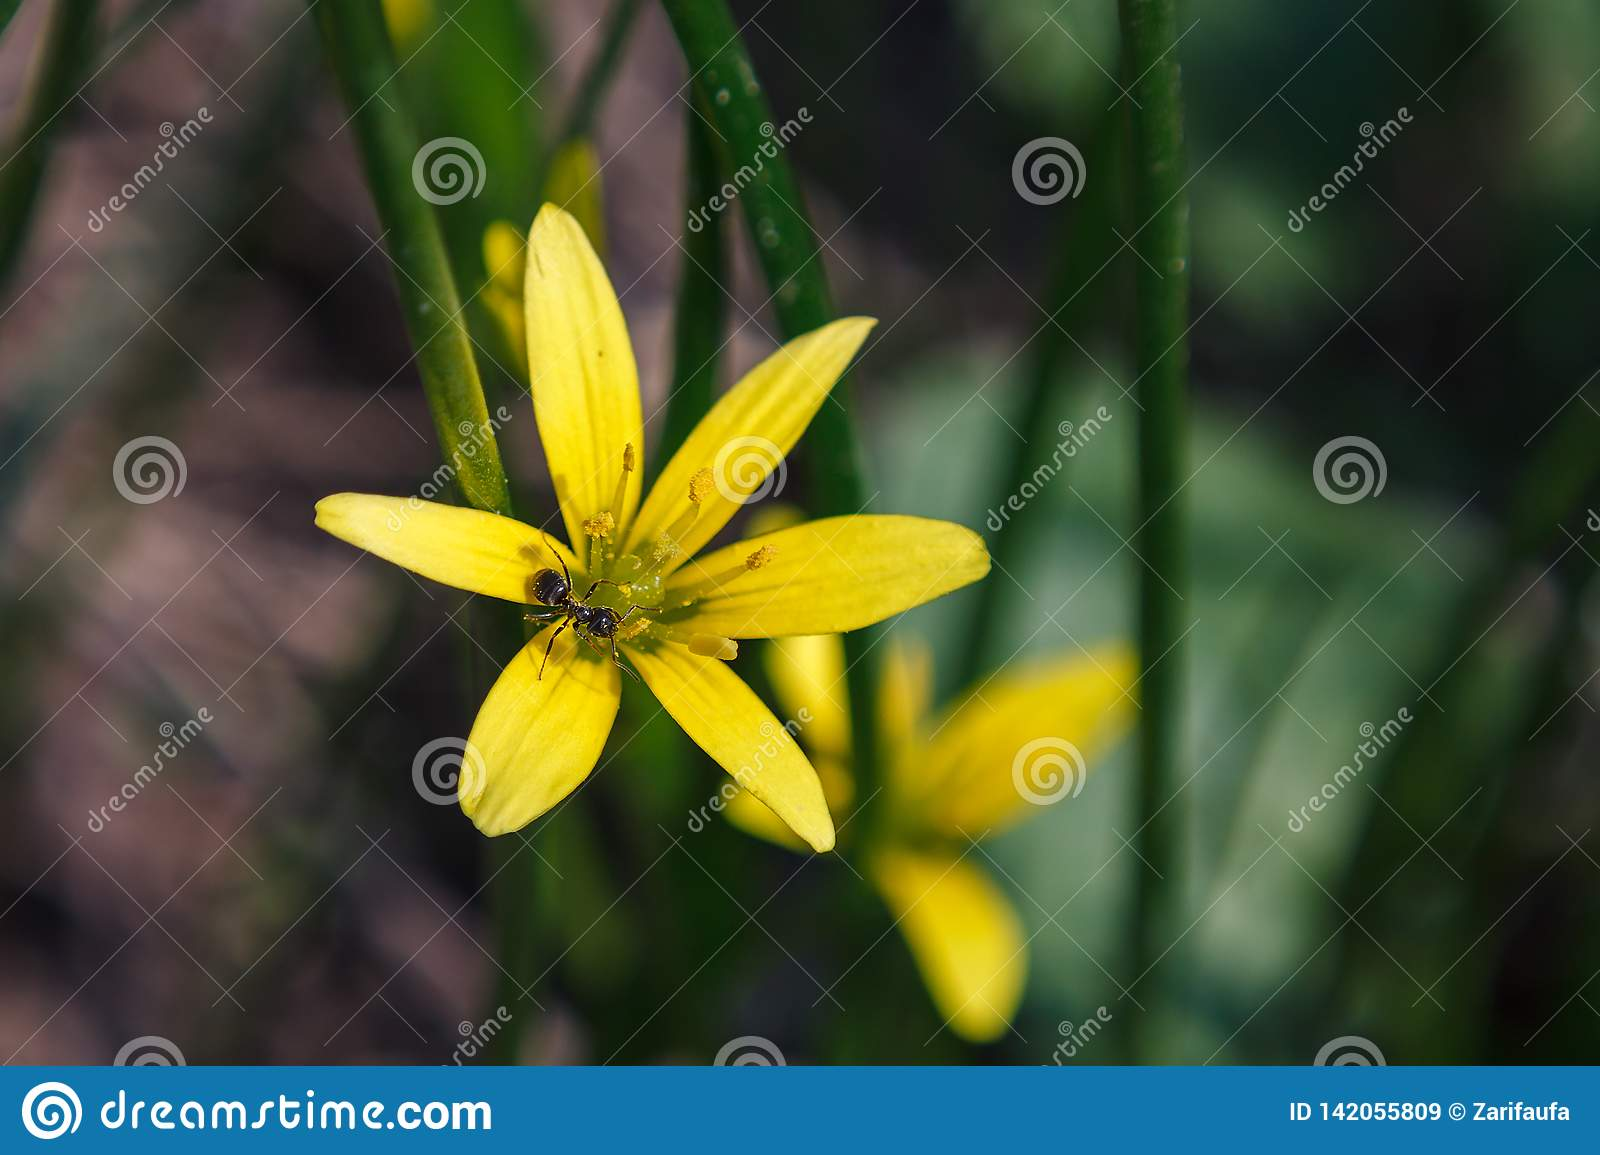 Black ant on yellow flower Nothoscordum plants in onion tribe within the Amaryllis family